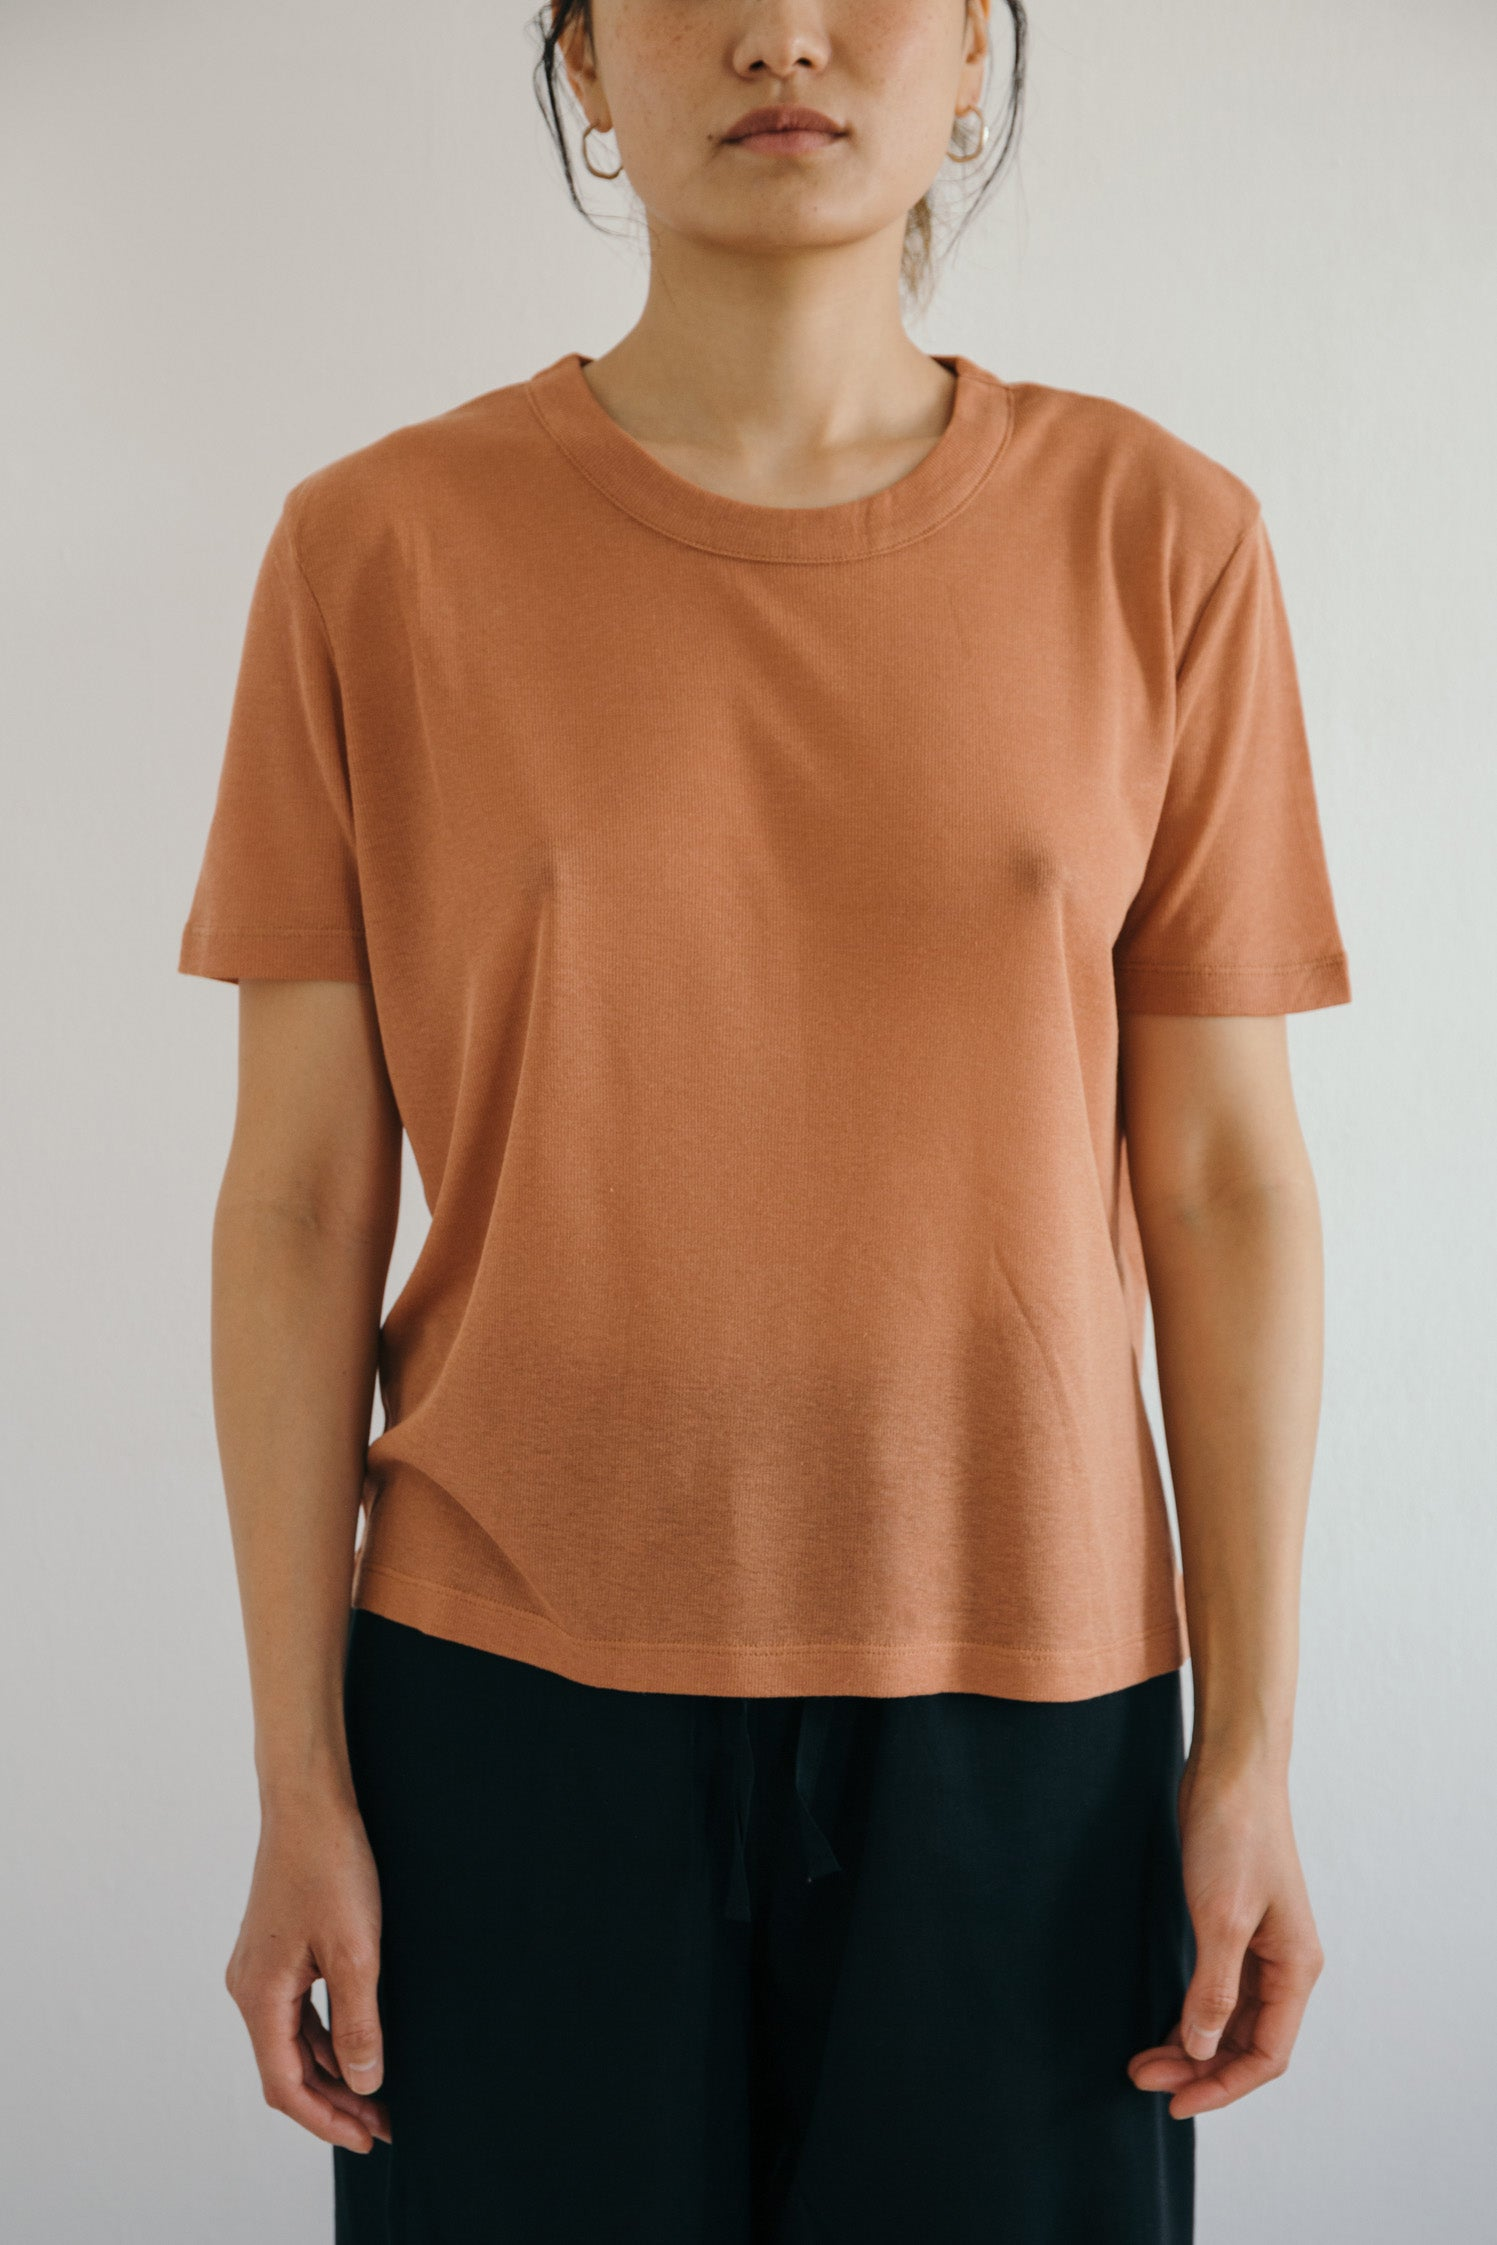 Relax T-Shirt in Toasted Nut